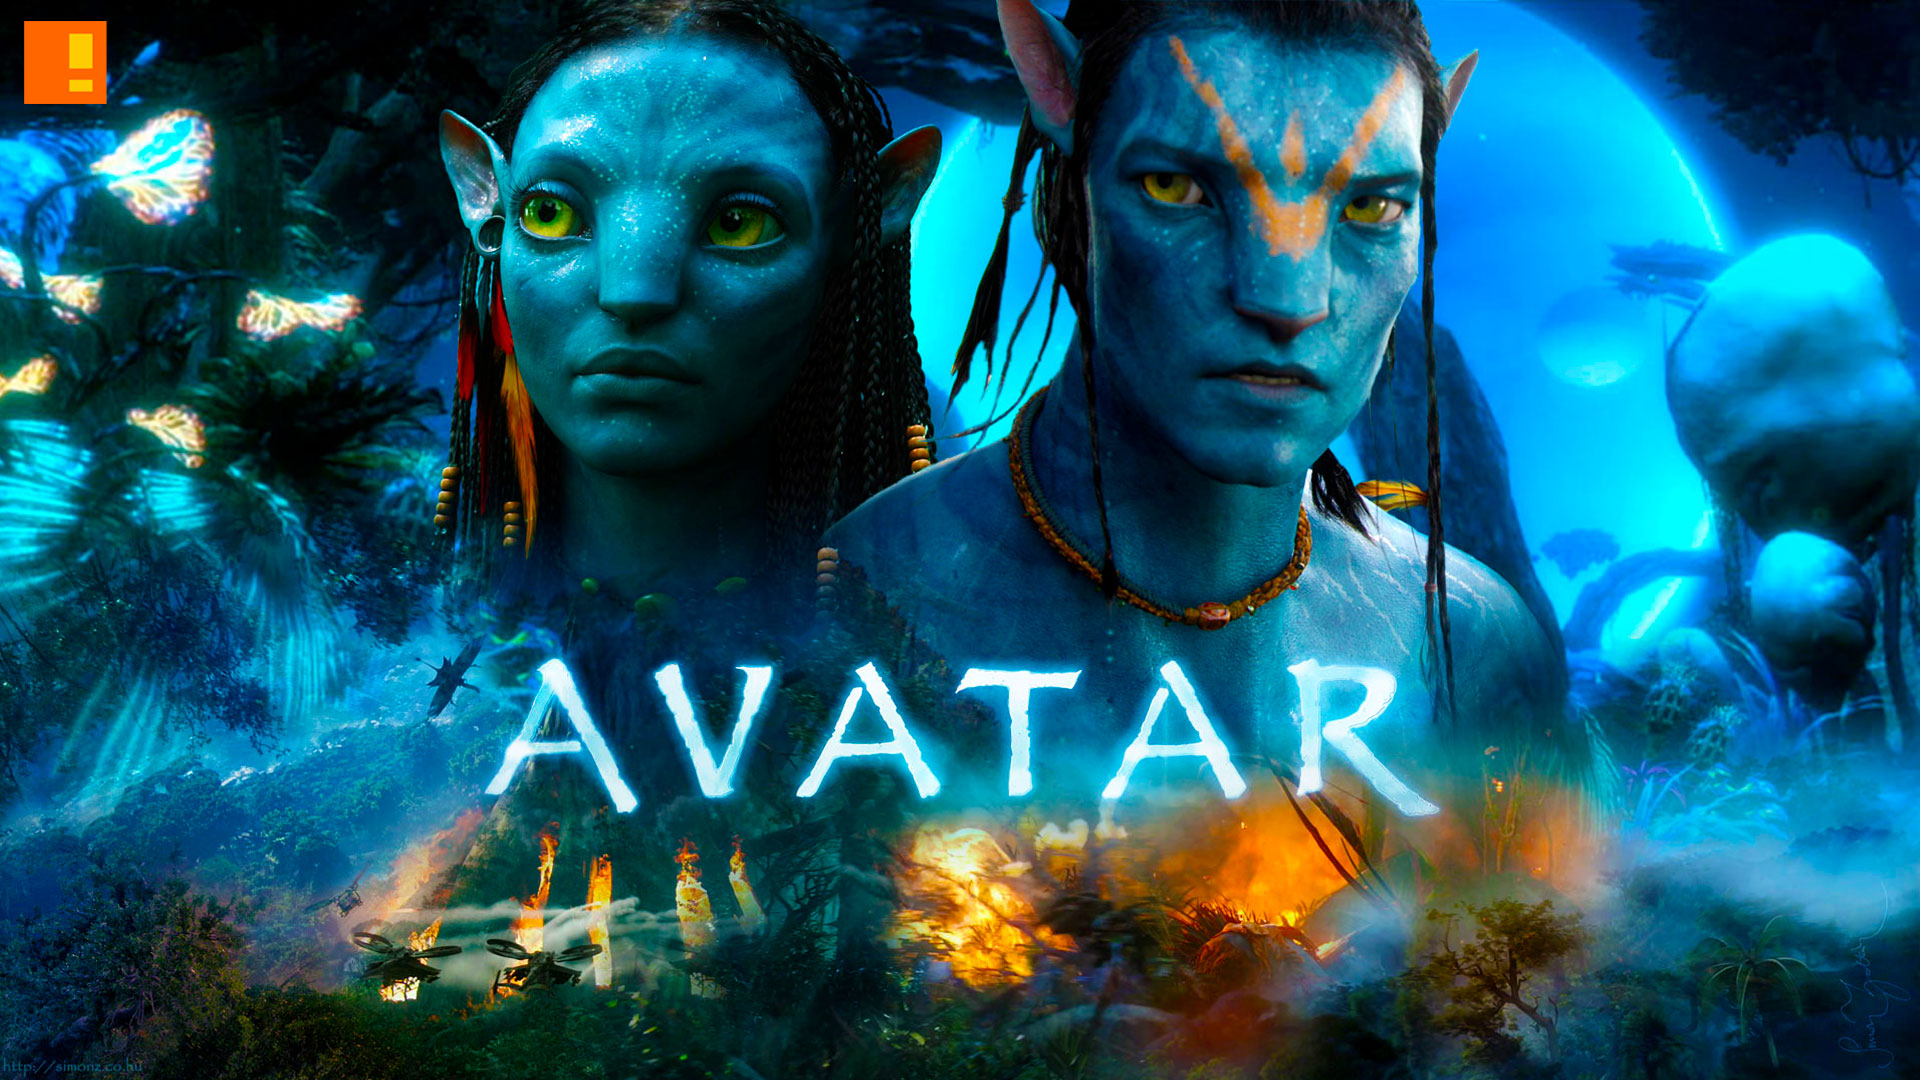 avatar, james cameron, kabam, mobile game, strategy, entertainment on tap, the action pixel, lightstorm entertainment, 20th century fox